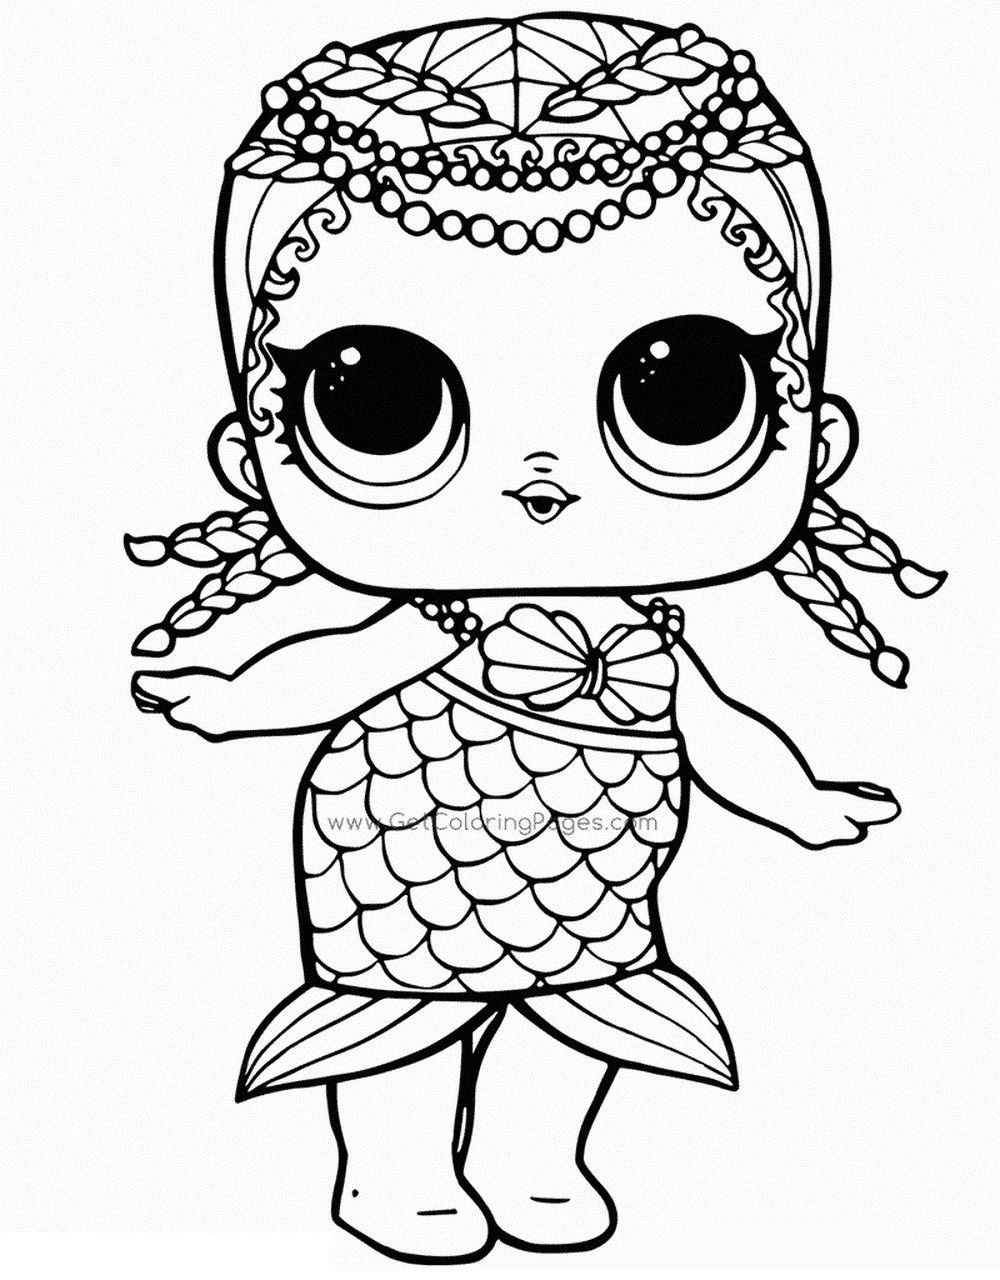 Mermaid Lol Doll Coloring Page Youngandtae Com Mermaid Coloring Pages Unicorn Coloring Pages Free Kids Coloring Pages